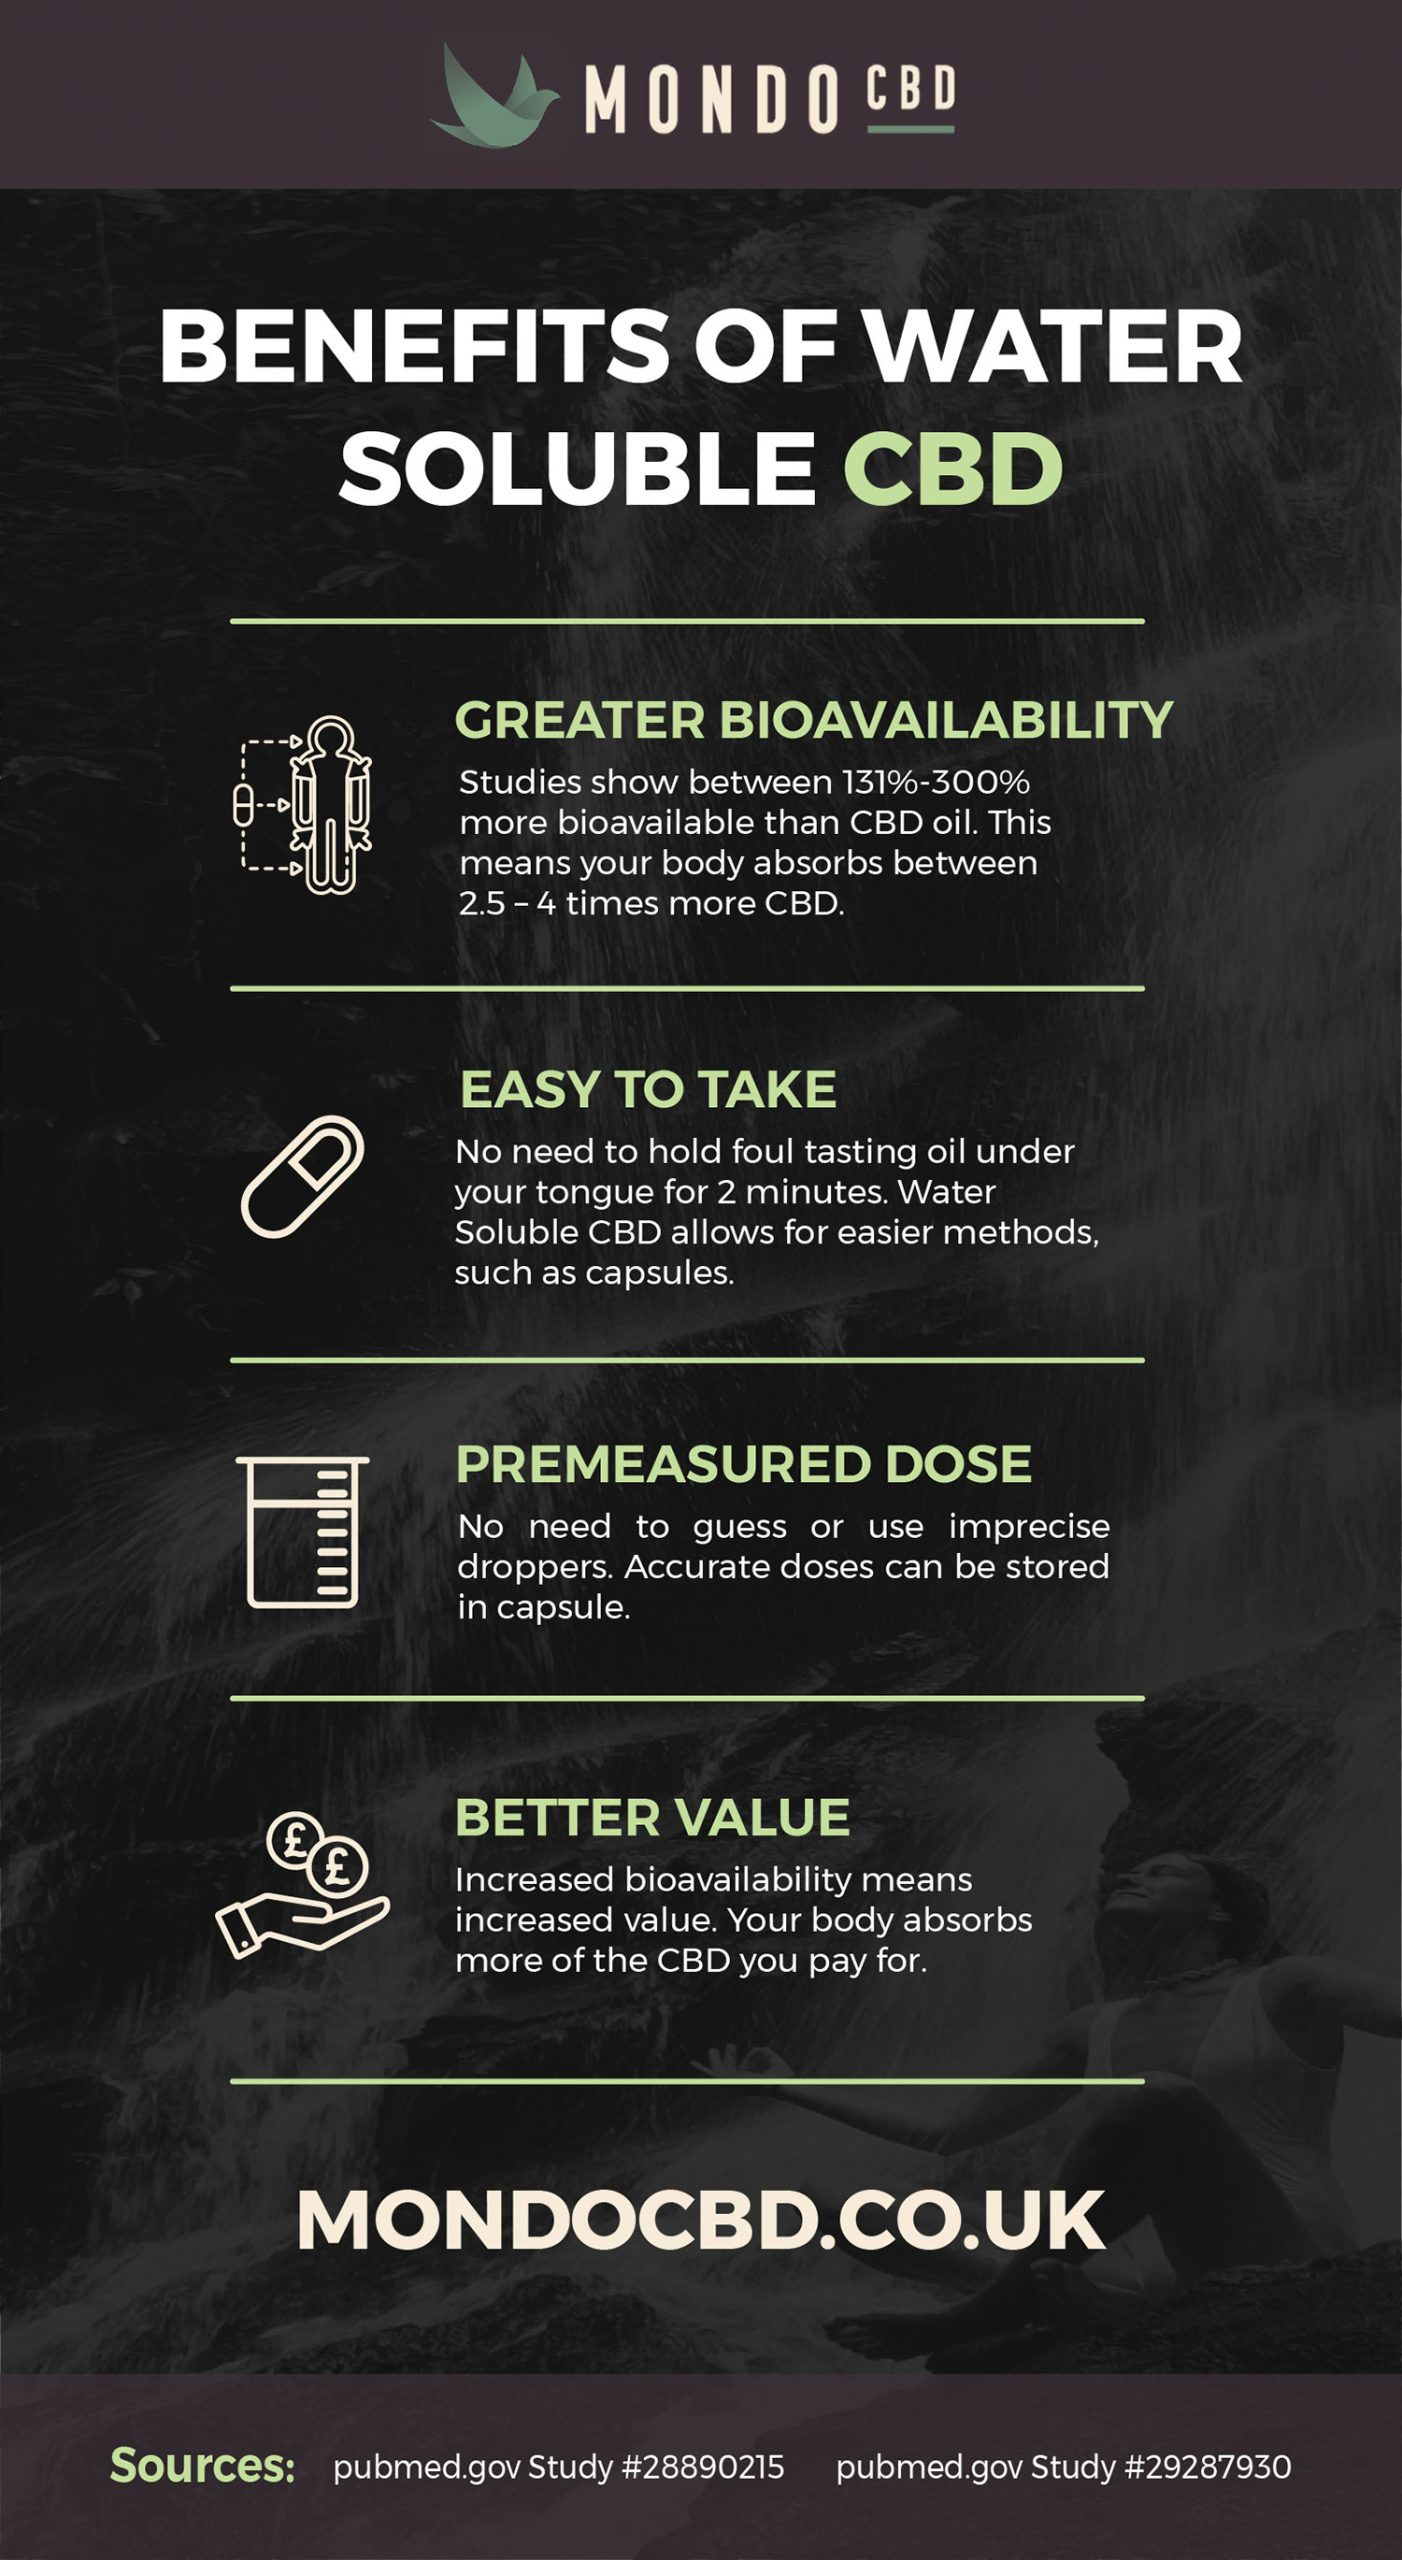 benefits of water soluble CBD infographic